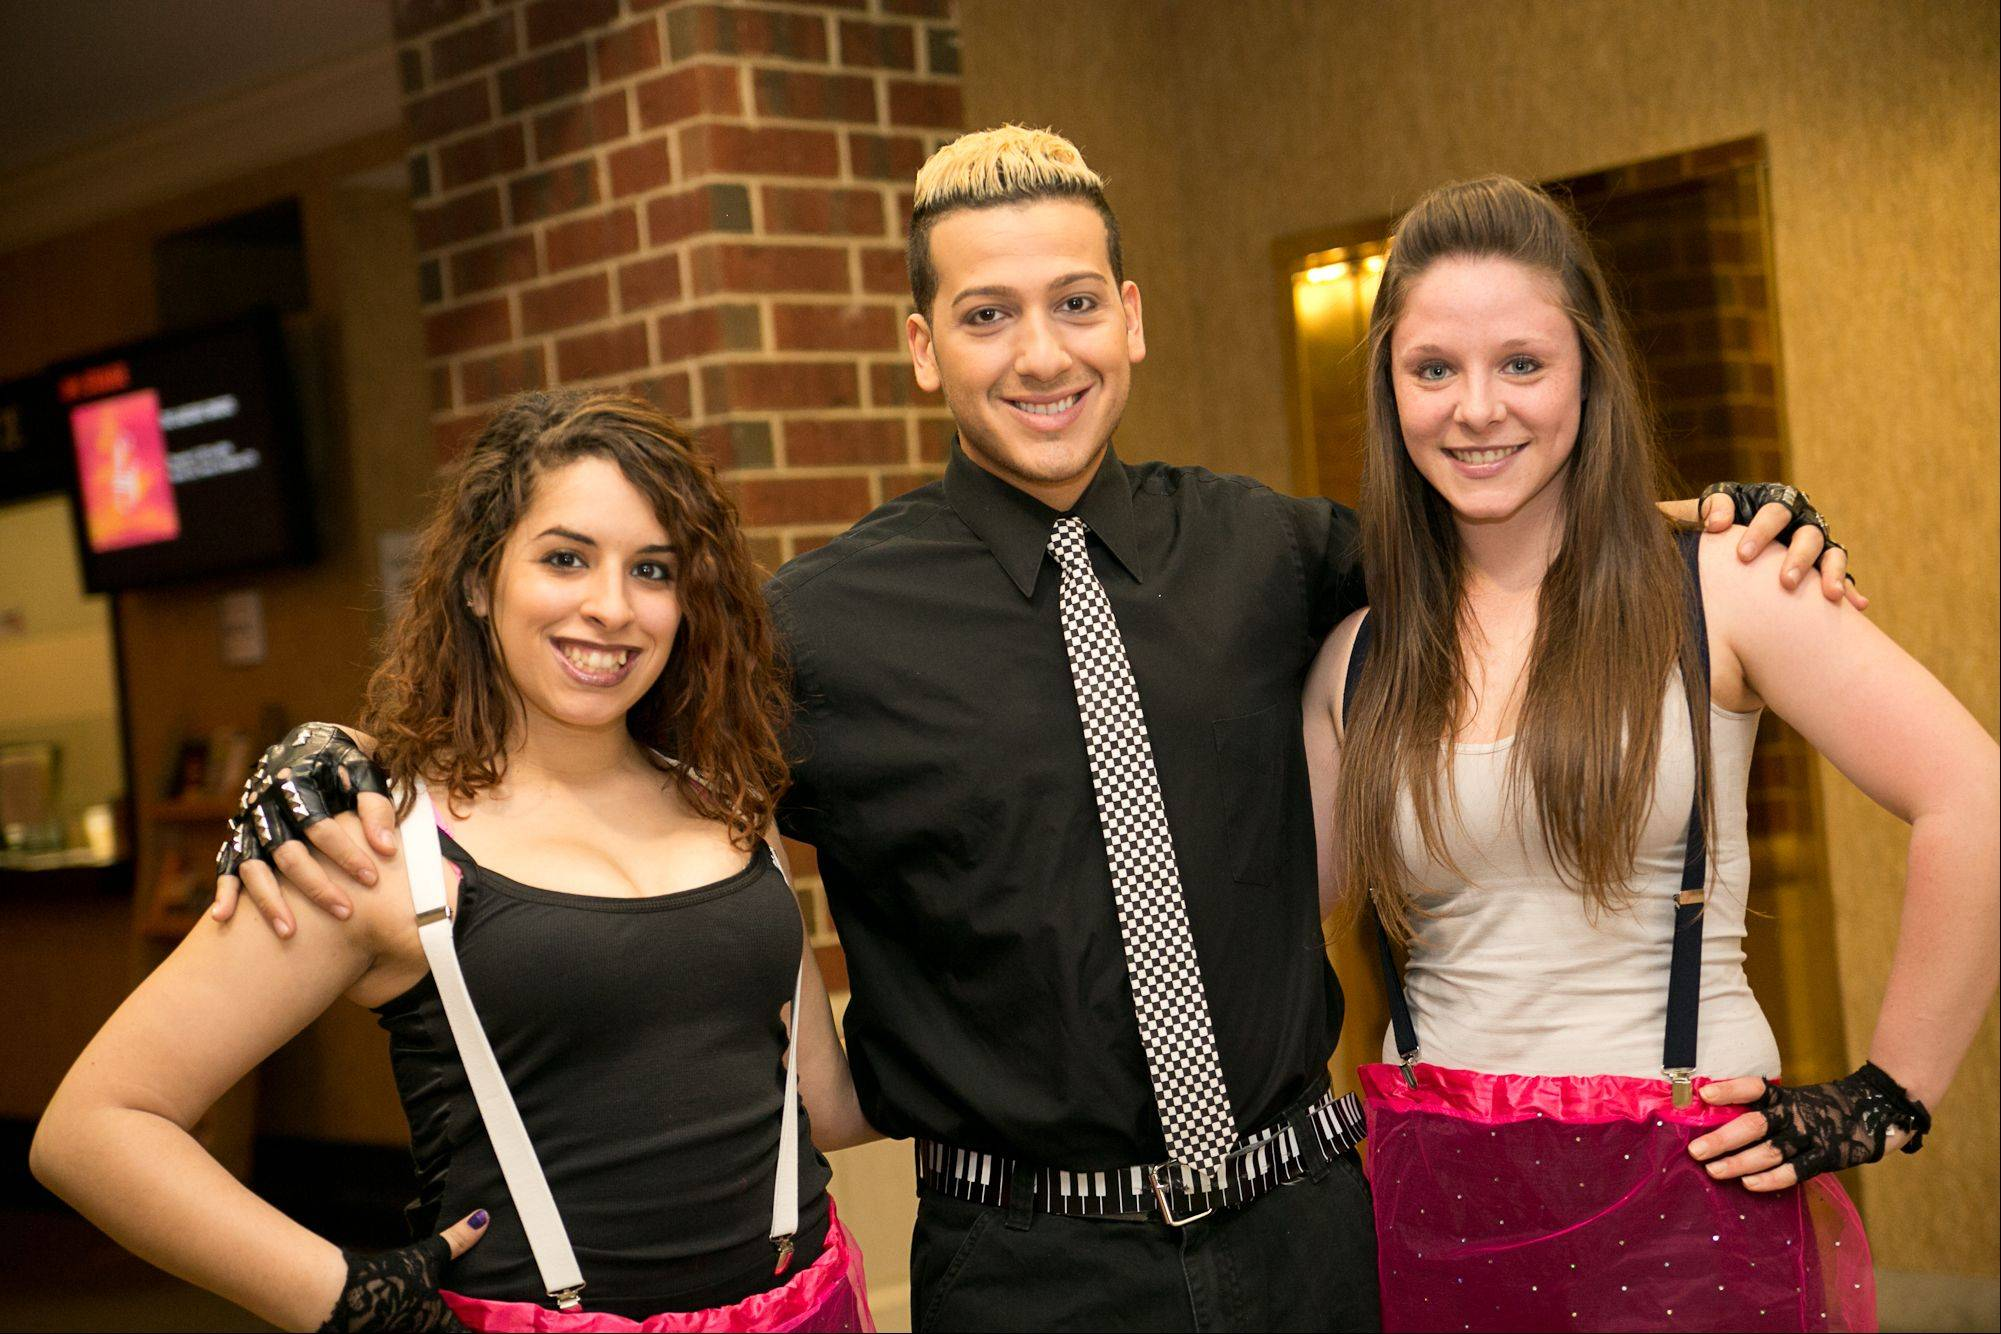 Andre Bellos, with backup dancers Alivia Tedeschi and Arielle Atar